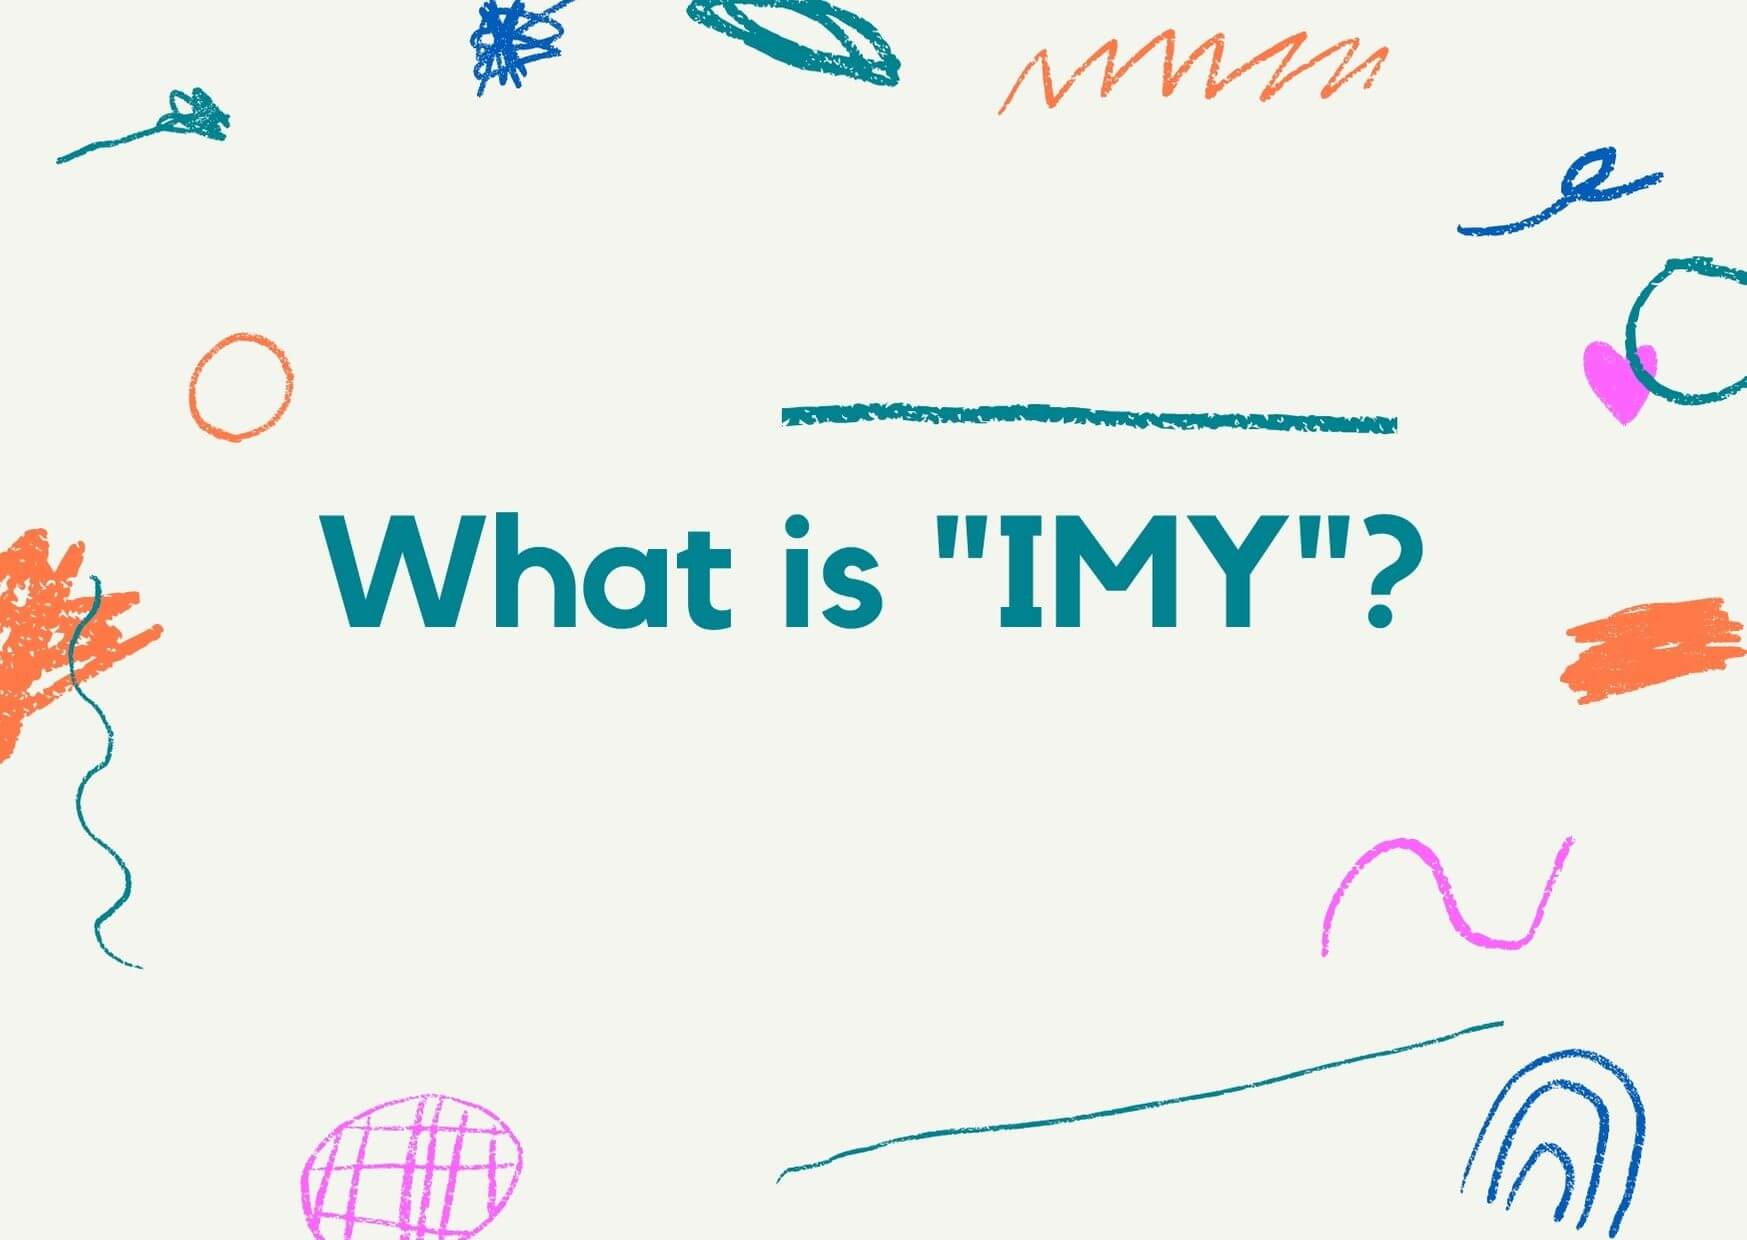 What is mean by IMY?